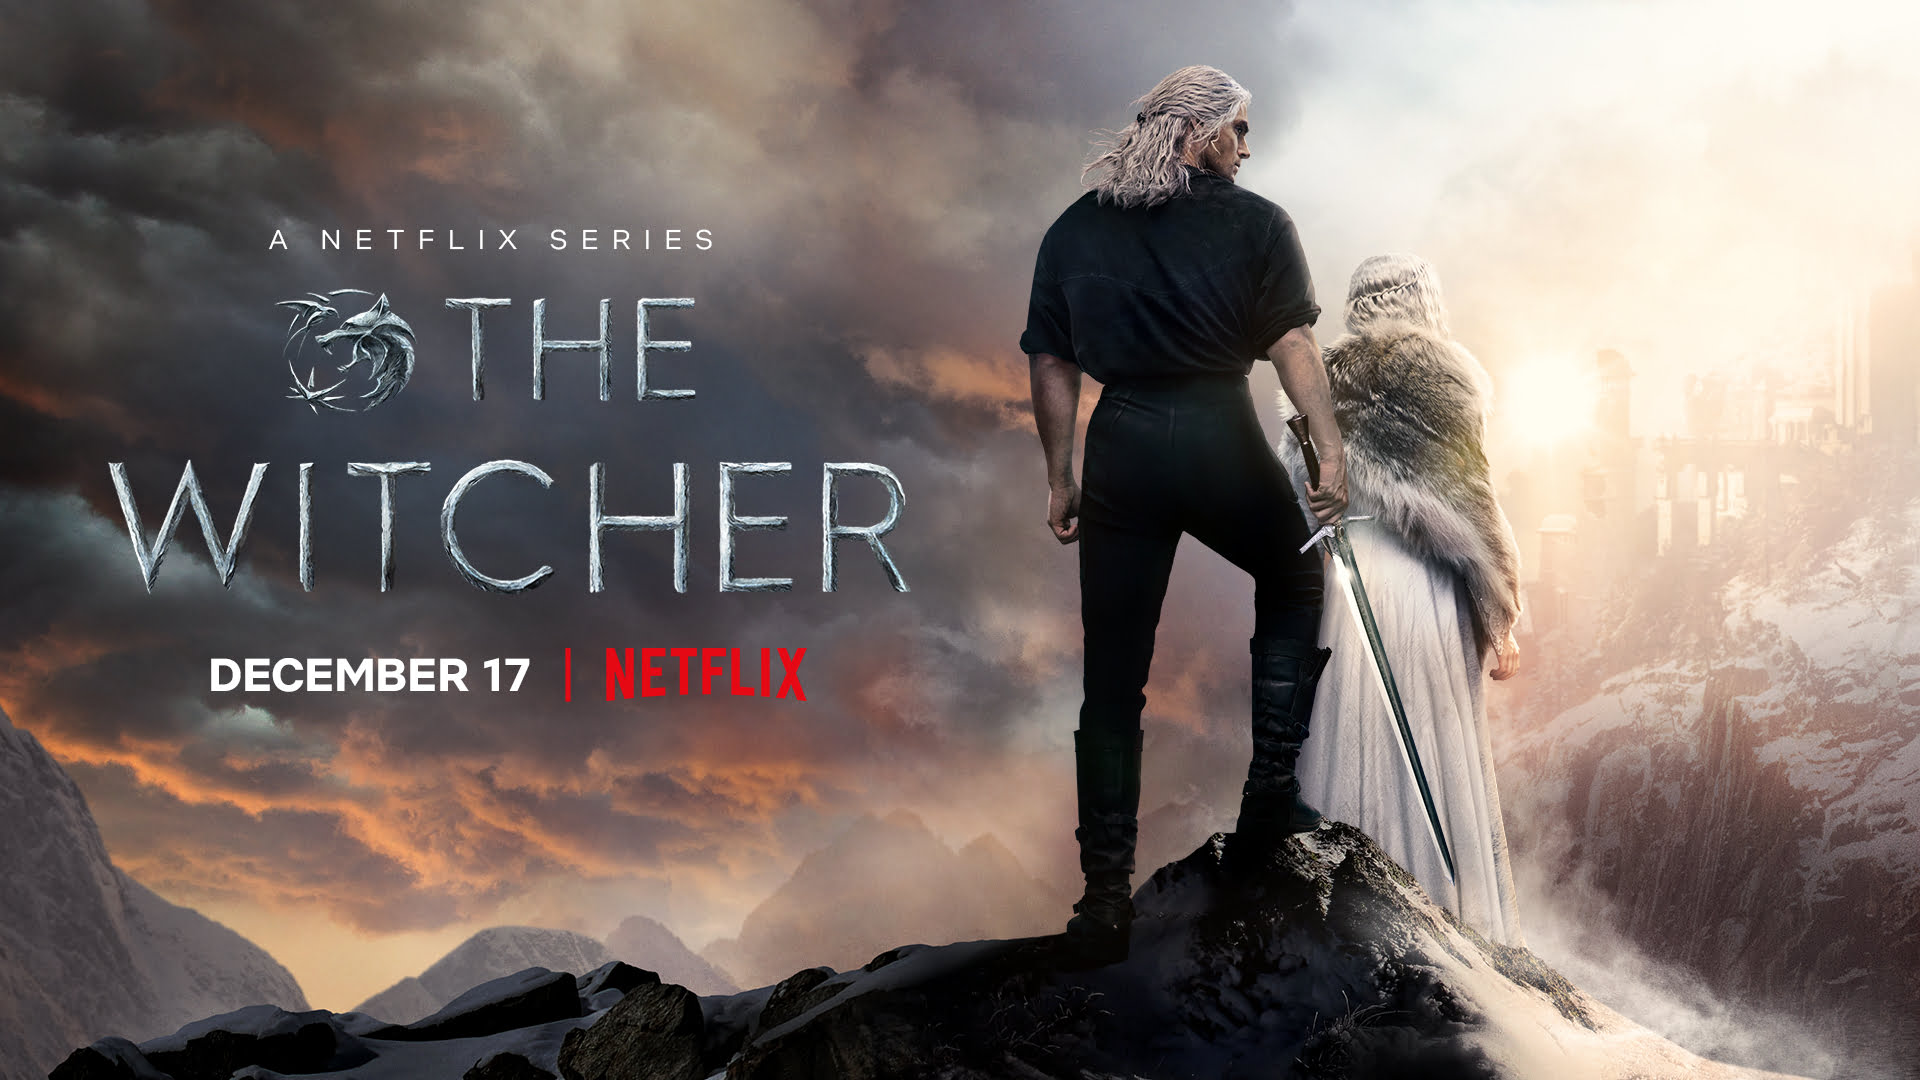 The Witcher Teaser Trailer Released